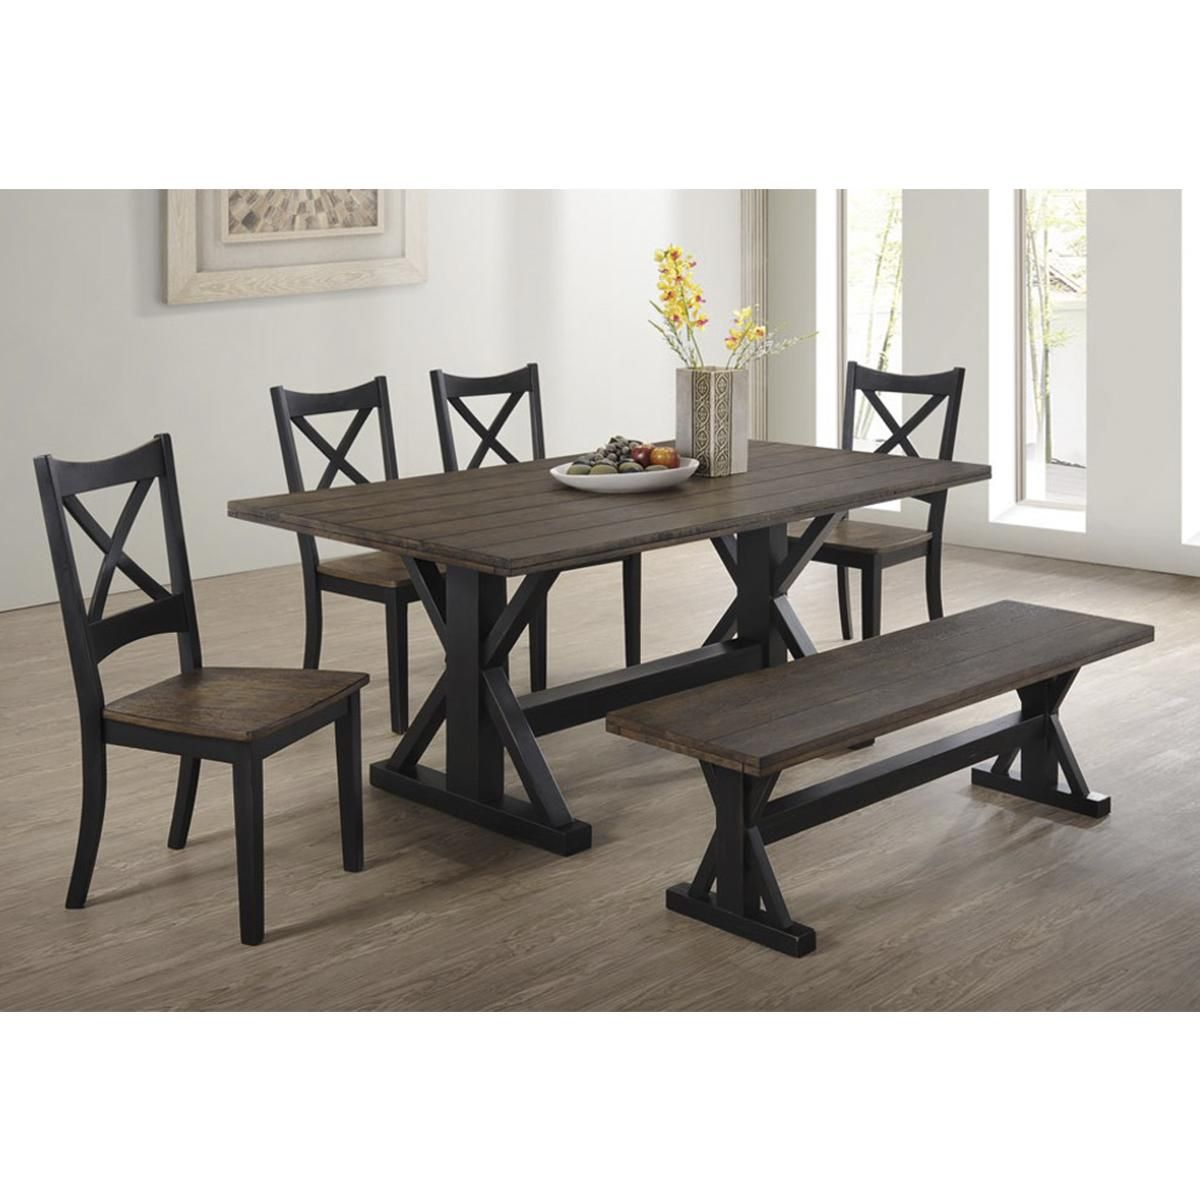 Simmons Upholstery Lexington 6 Piece Dining Set In Black And